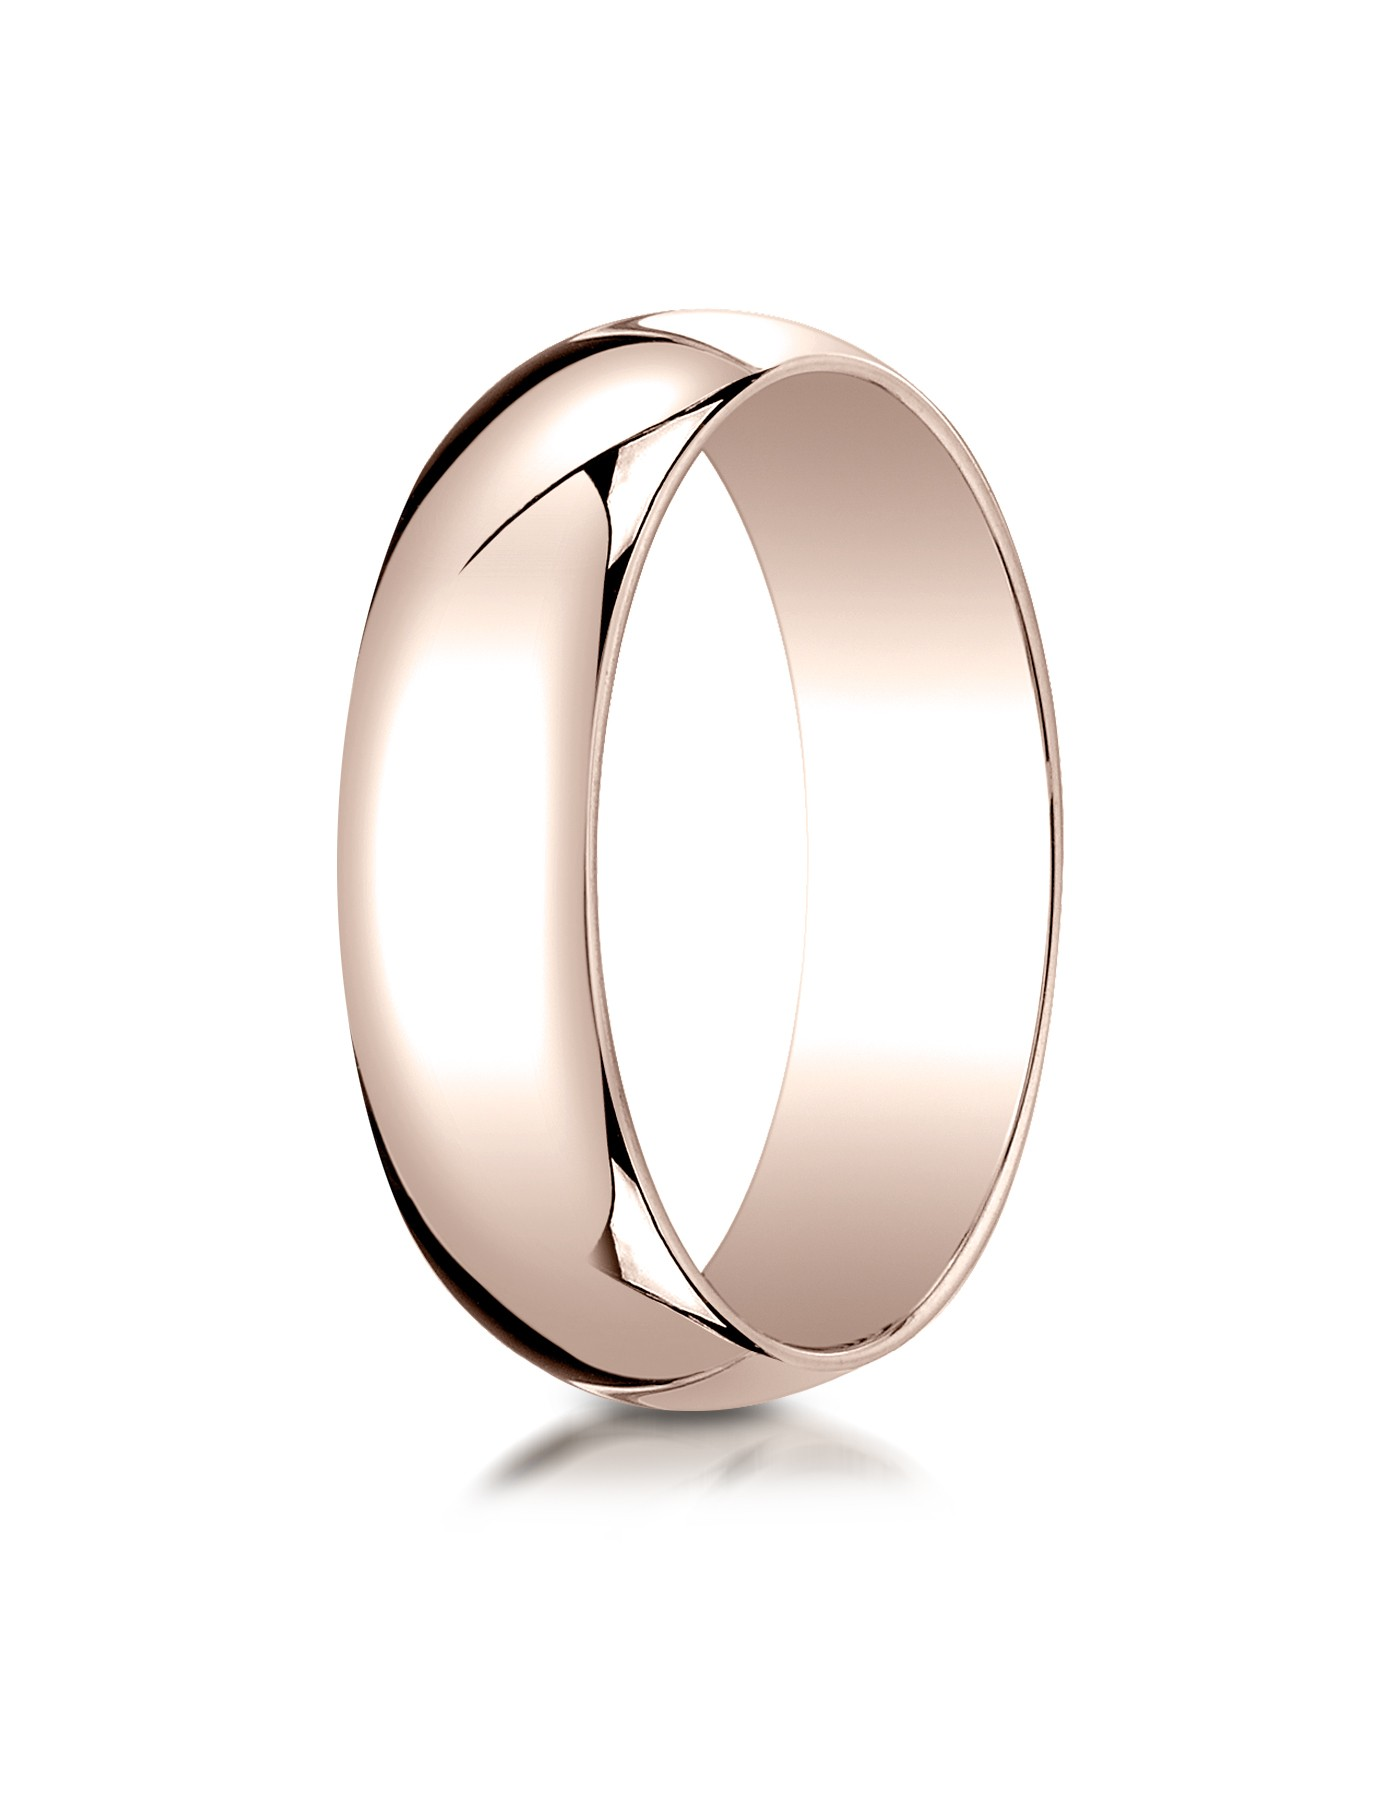 14k Rose Gold 6mm Slightly Domed Traditional Oval Ring